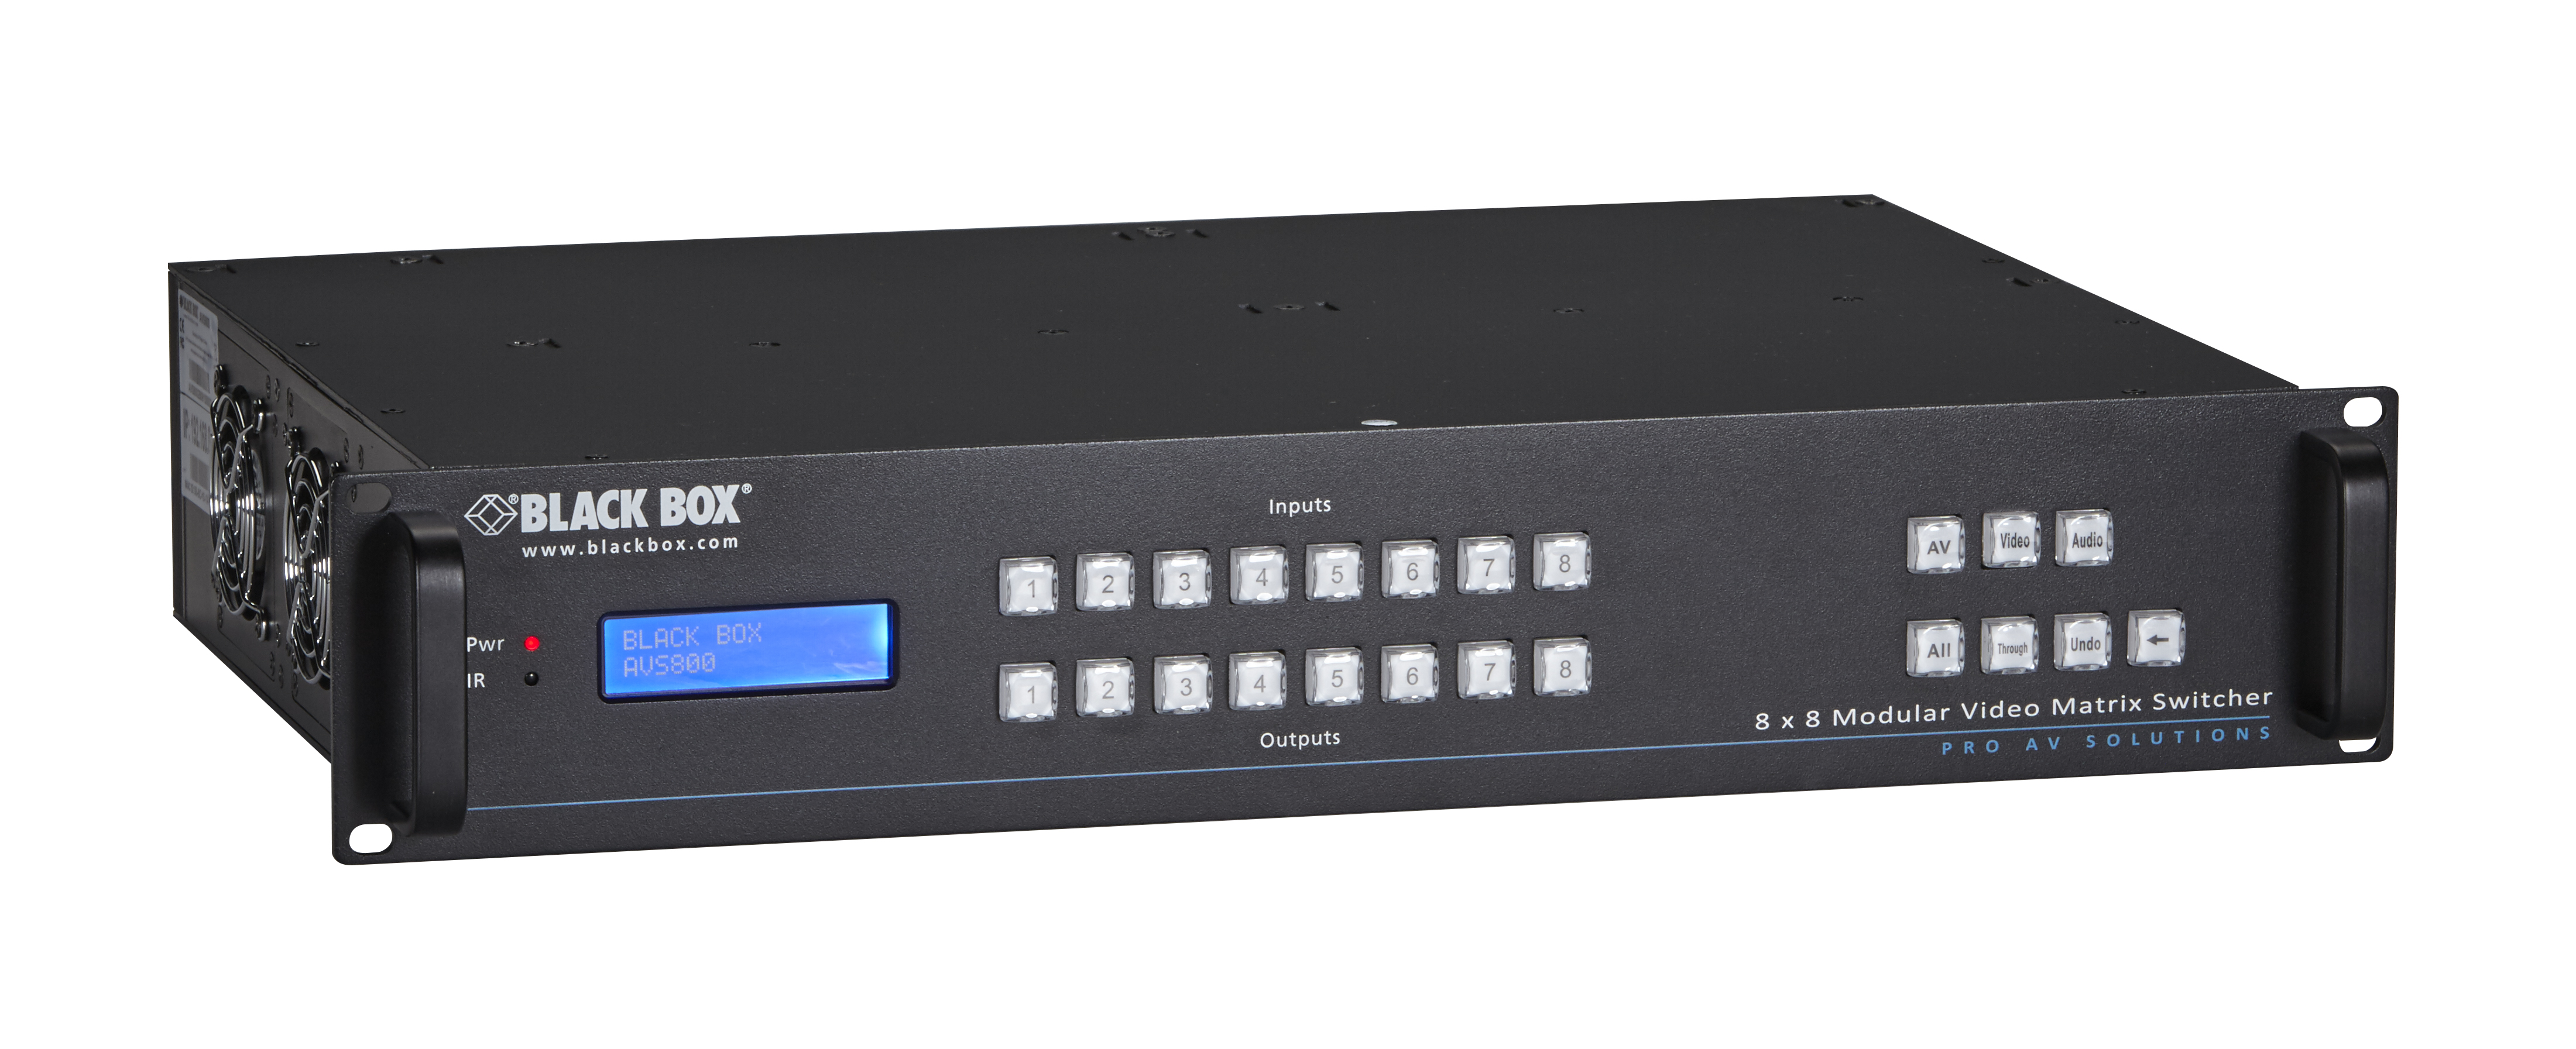 Modular video matrix switcher 8 x 8 i black box network services additional product image publicscrutiny Image collections